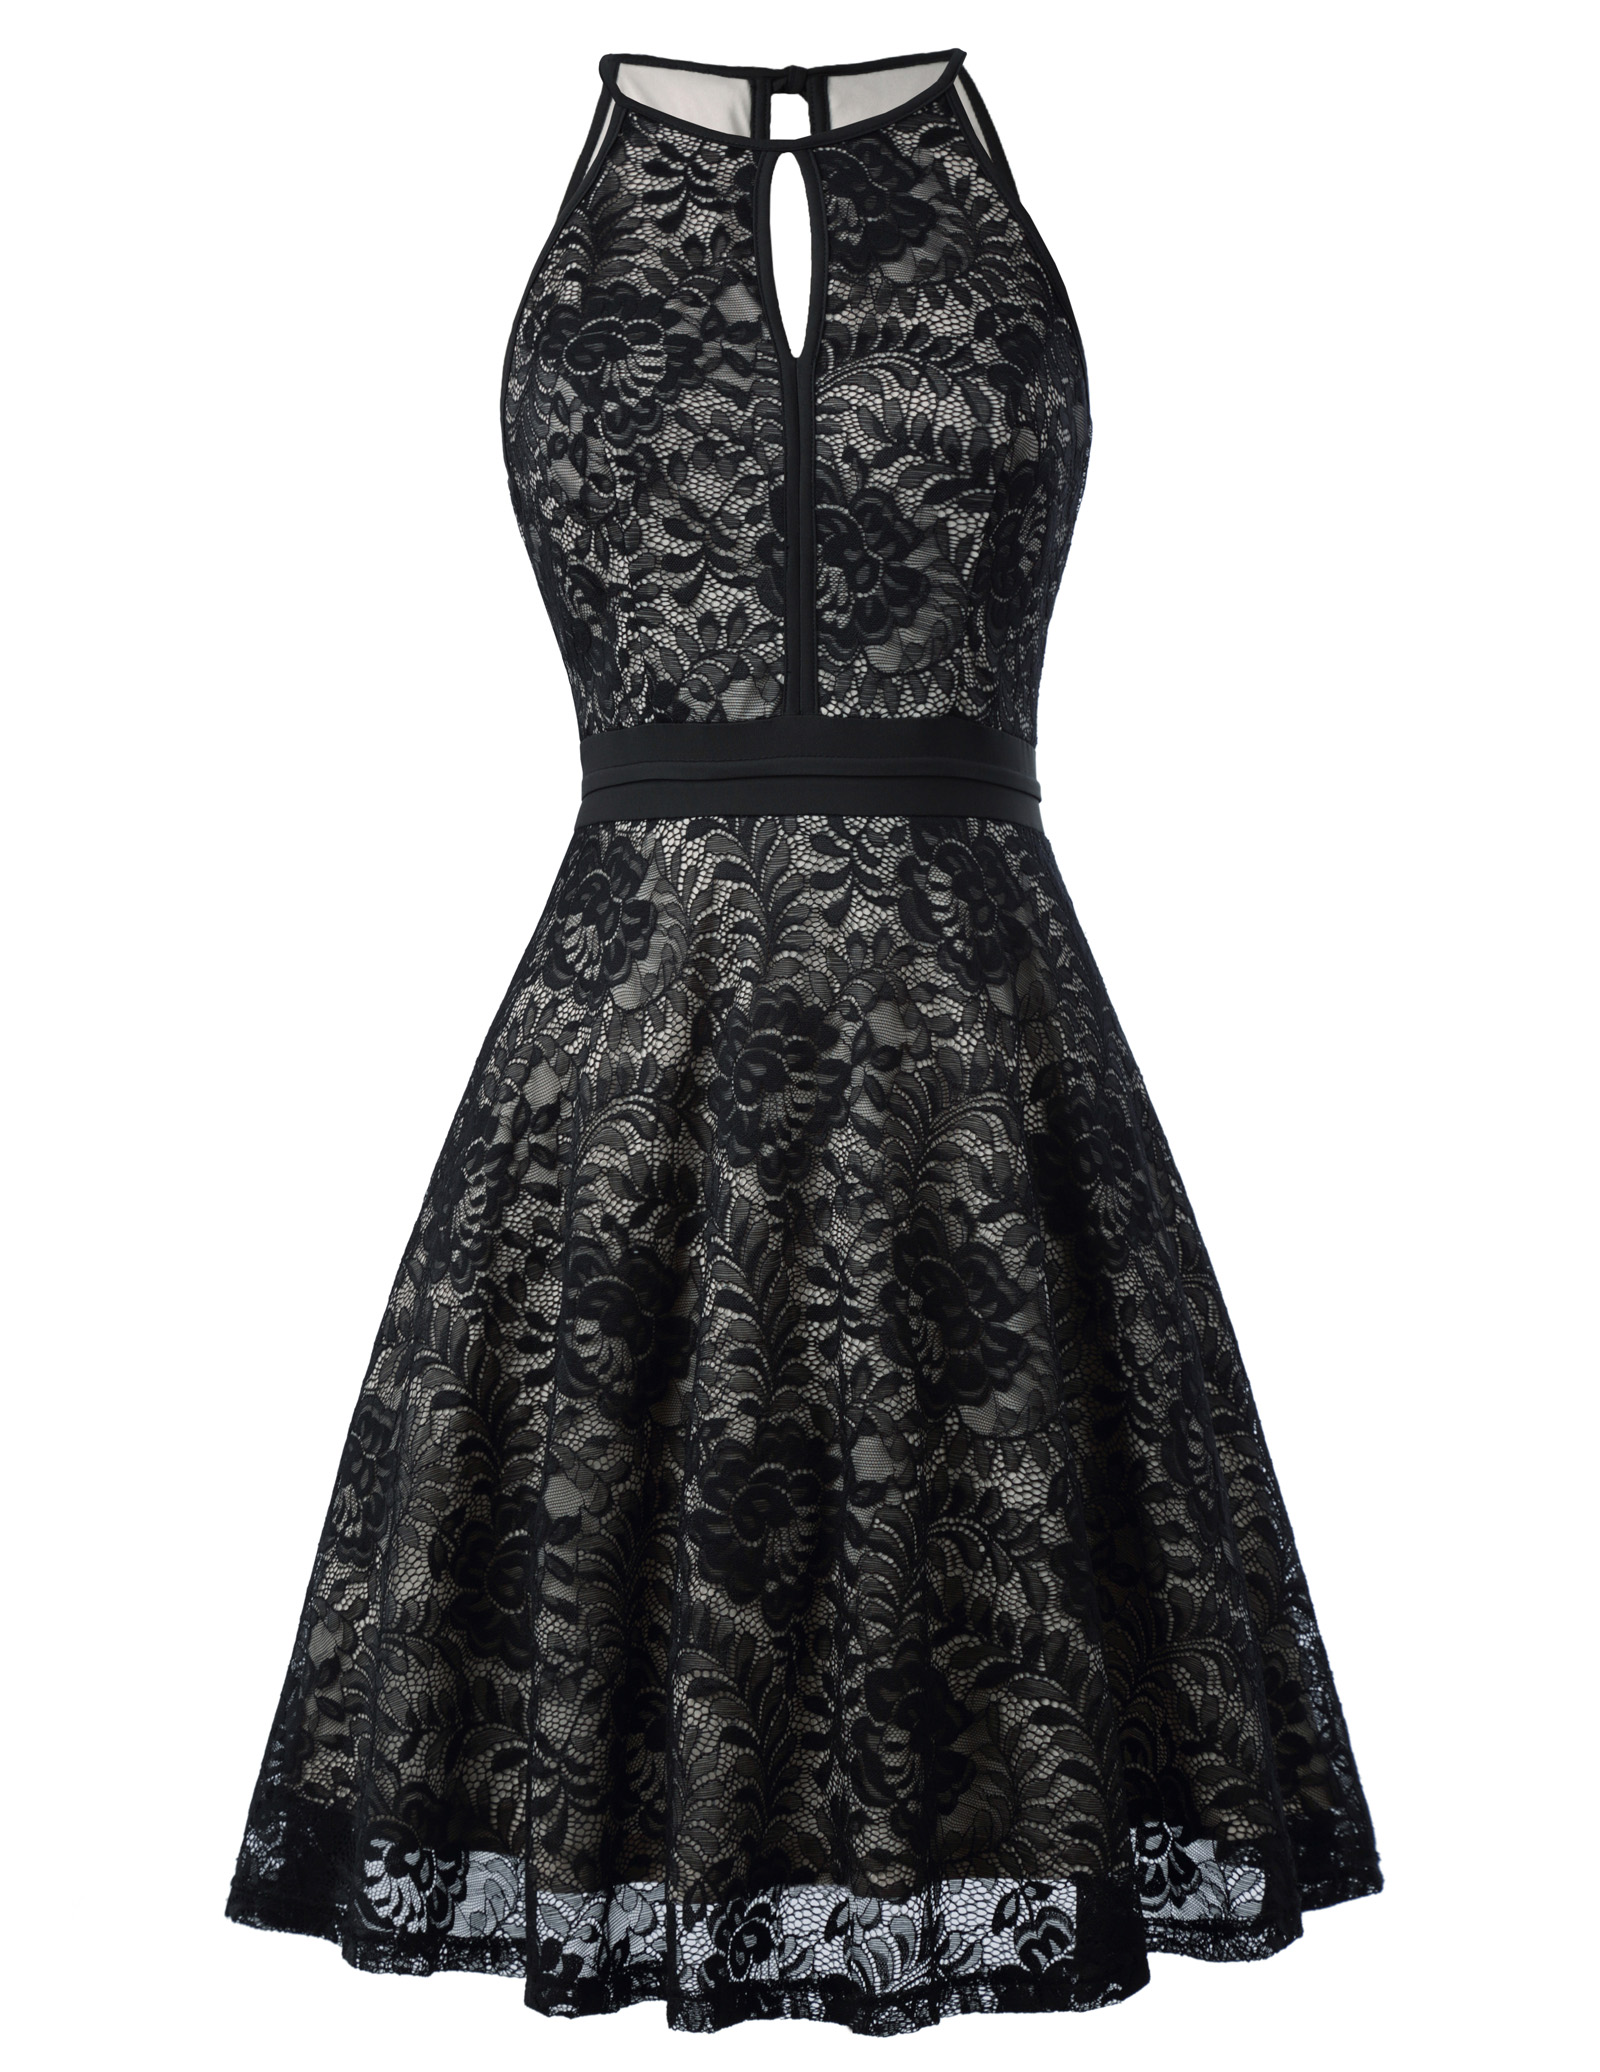 Vintage Black Lace Sleeveless Knee-Length Dress 3